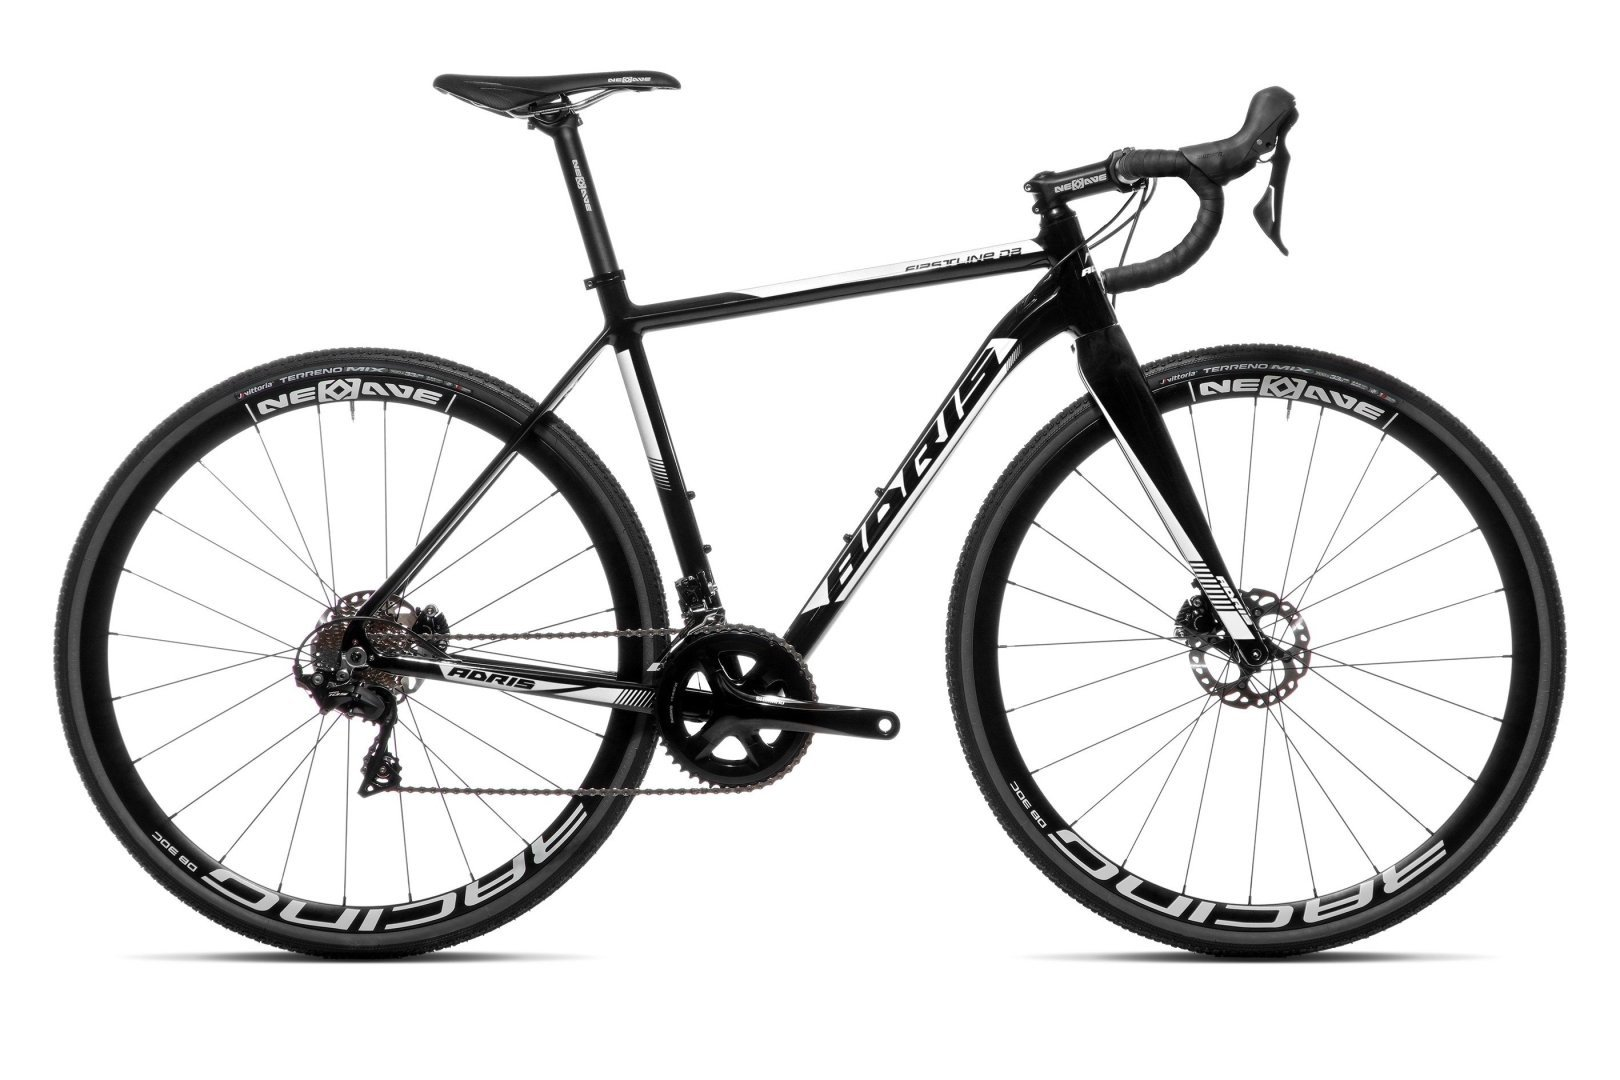 VELO ADRIS FIRSTLINE CX 3.2 DISC SHIMANO 105 R7020 11V